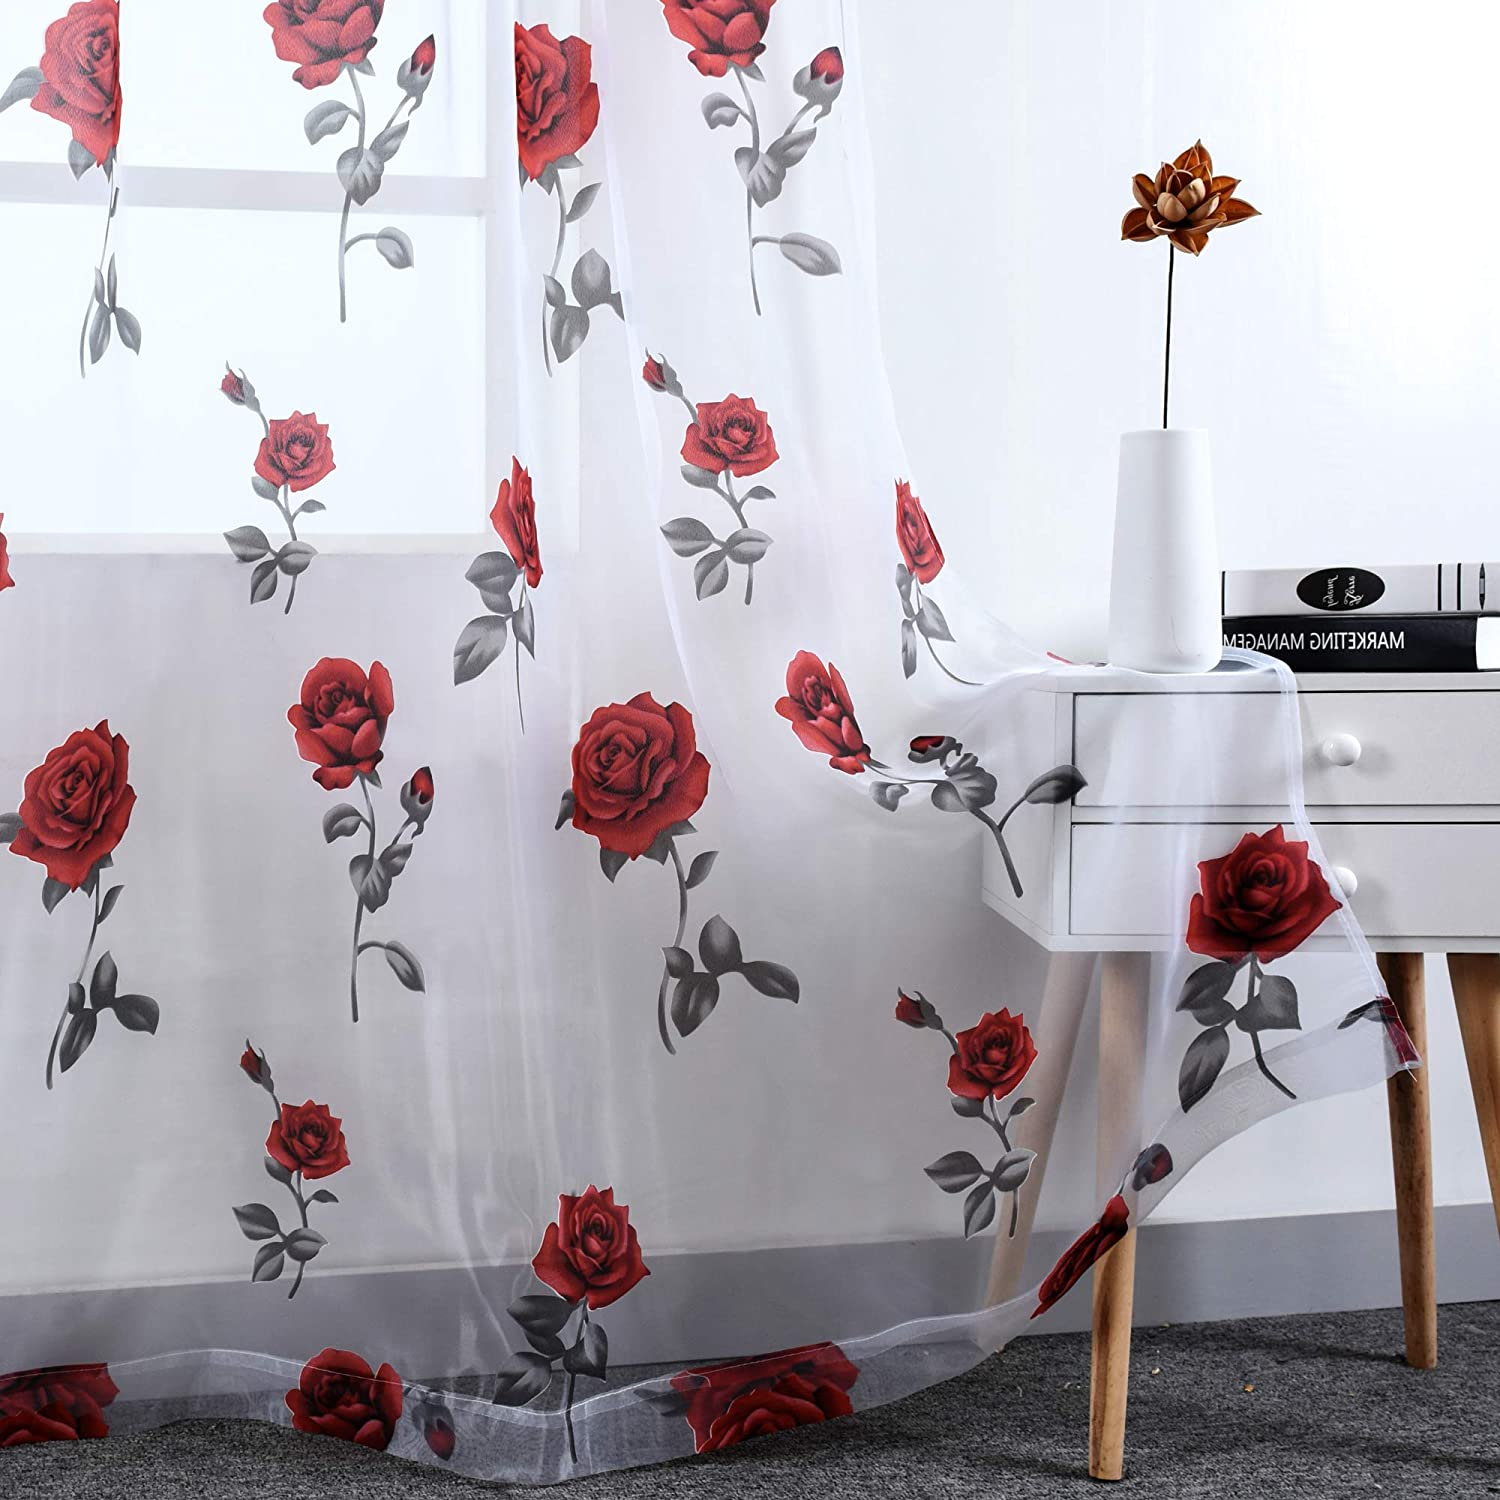 Amazon Com Christmas Red Rose Burnout Sheer Curtains For Living Room 96 Inches Long Transparent Curtain Panels Sheer Drapes For Girls Bedroom Rod Pocket 2 Panels 52 By 96 Inch Length Kitchen Dining